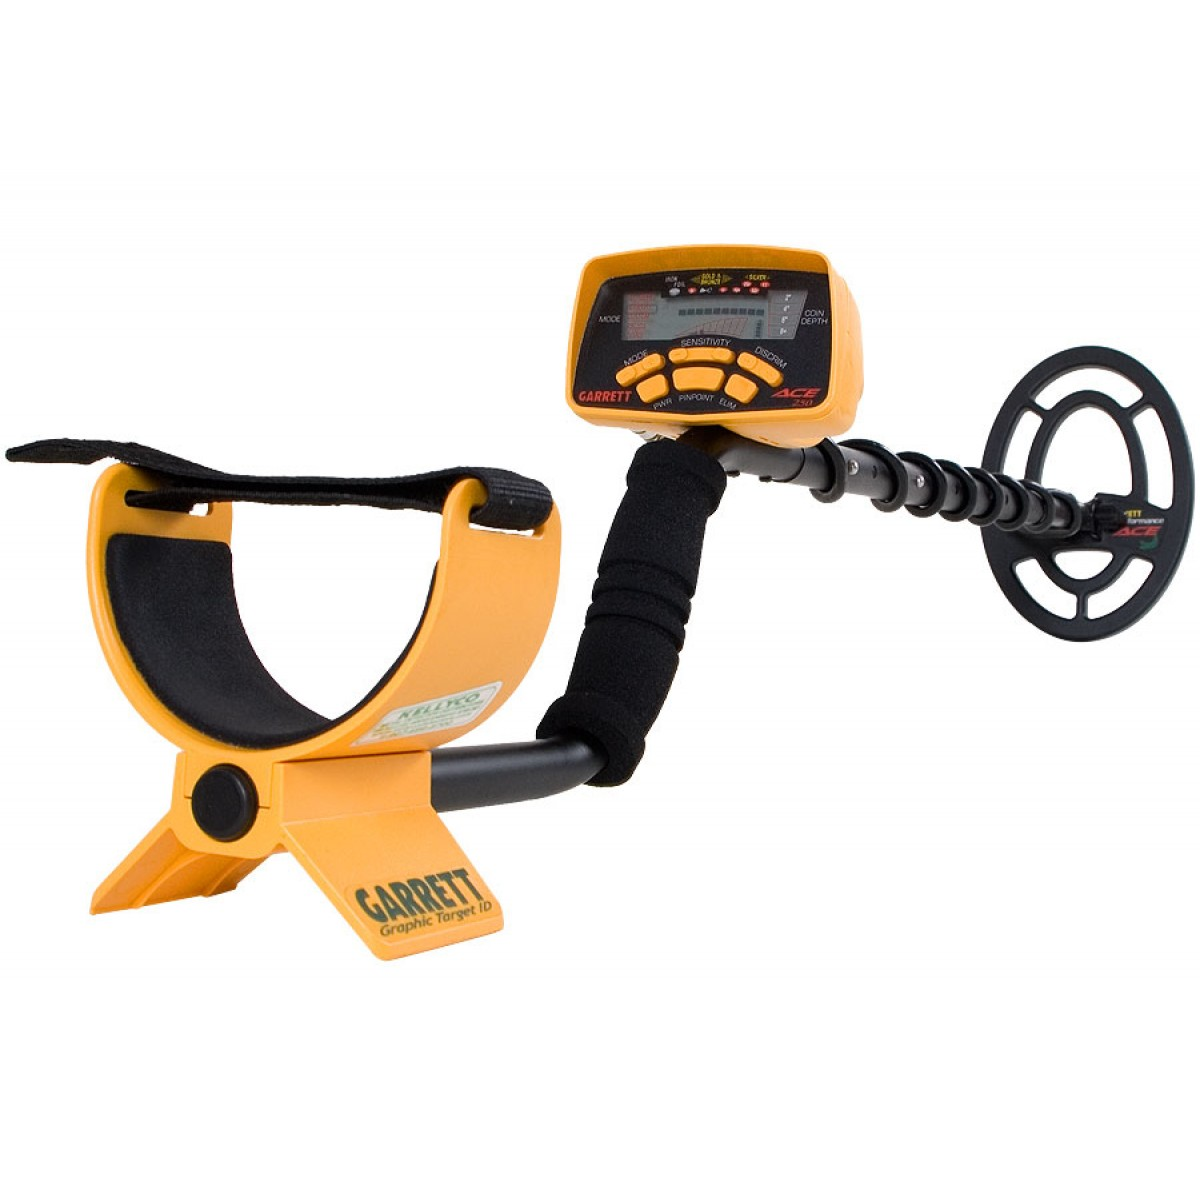 Garrett ace 250 metal detector with 6 5x9 coil on popscreen.